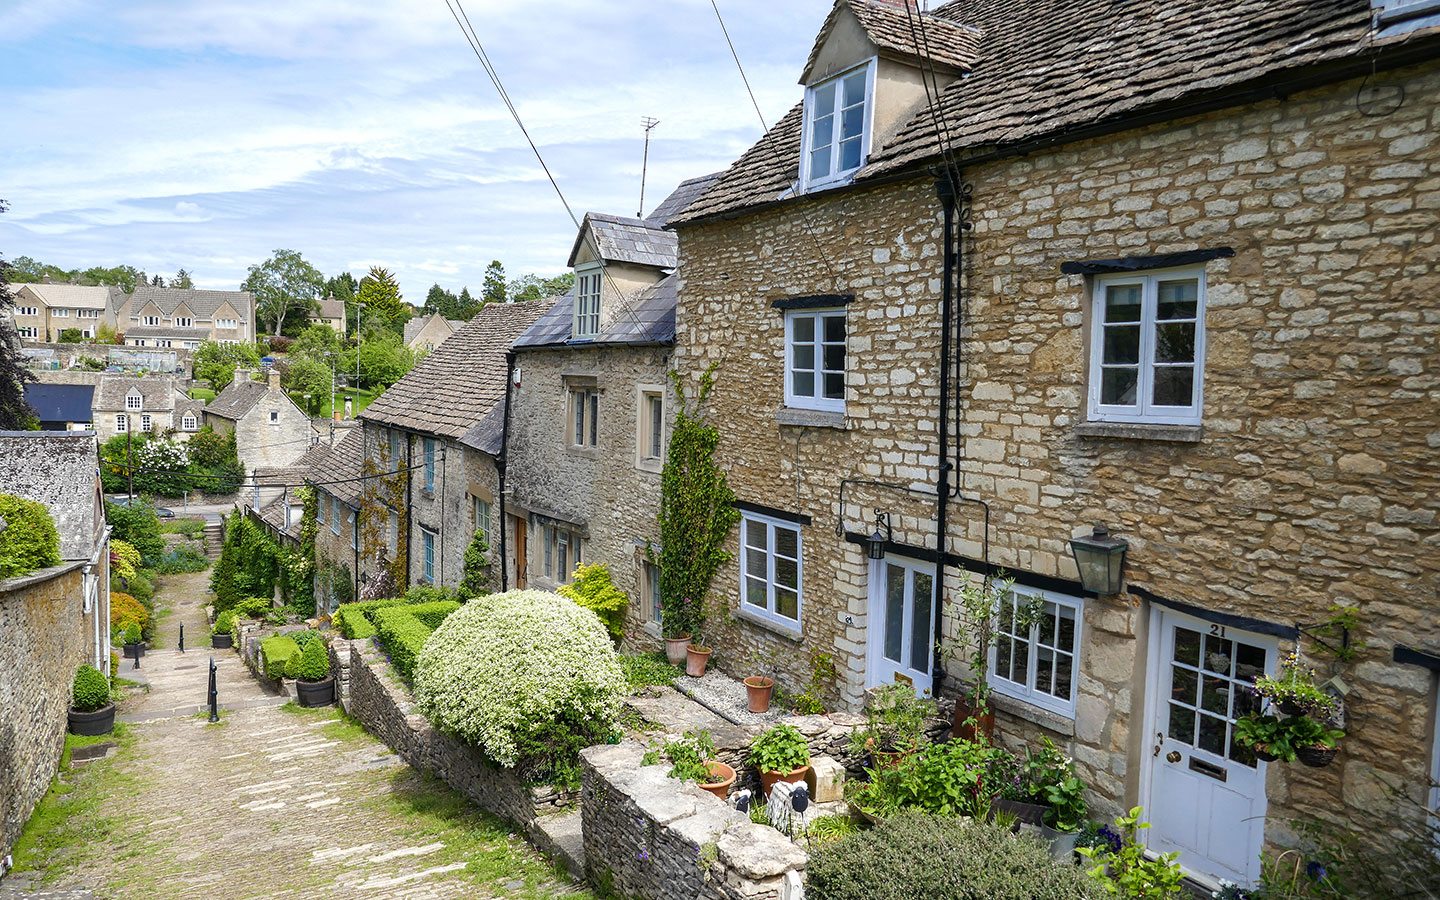 Wool merchants' houses along the Chipping Steps, Tetbury